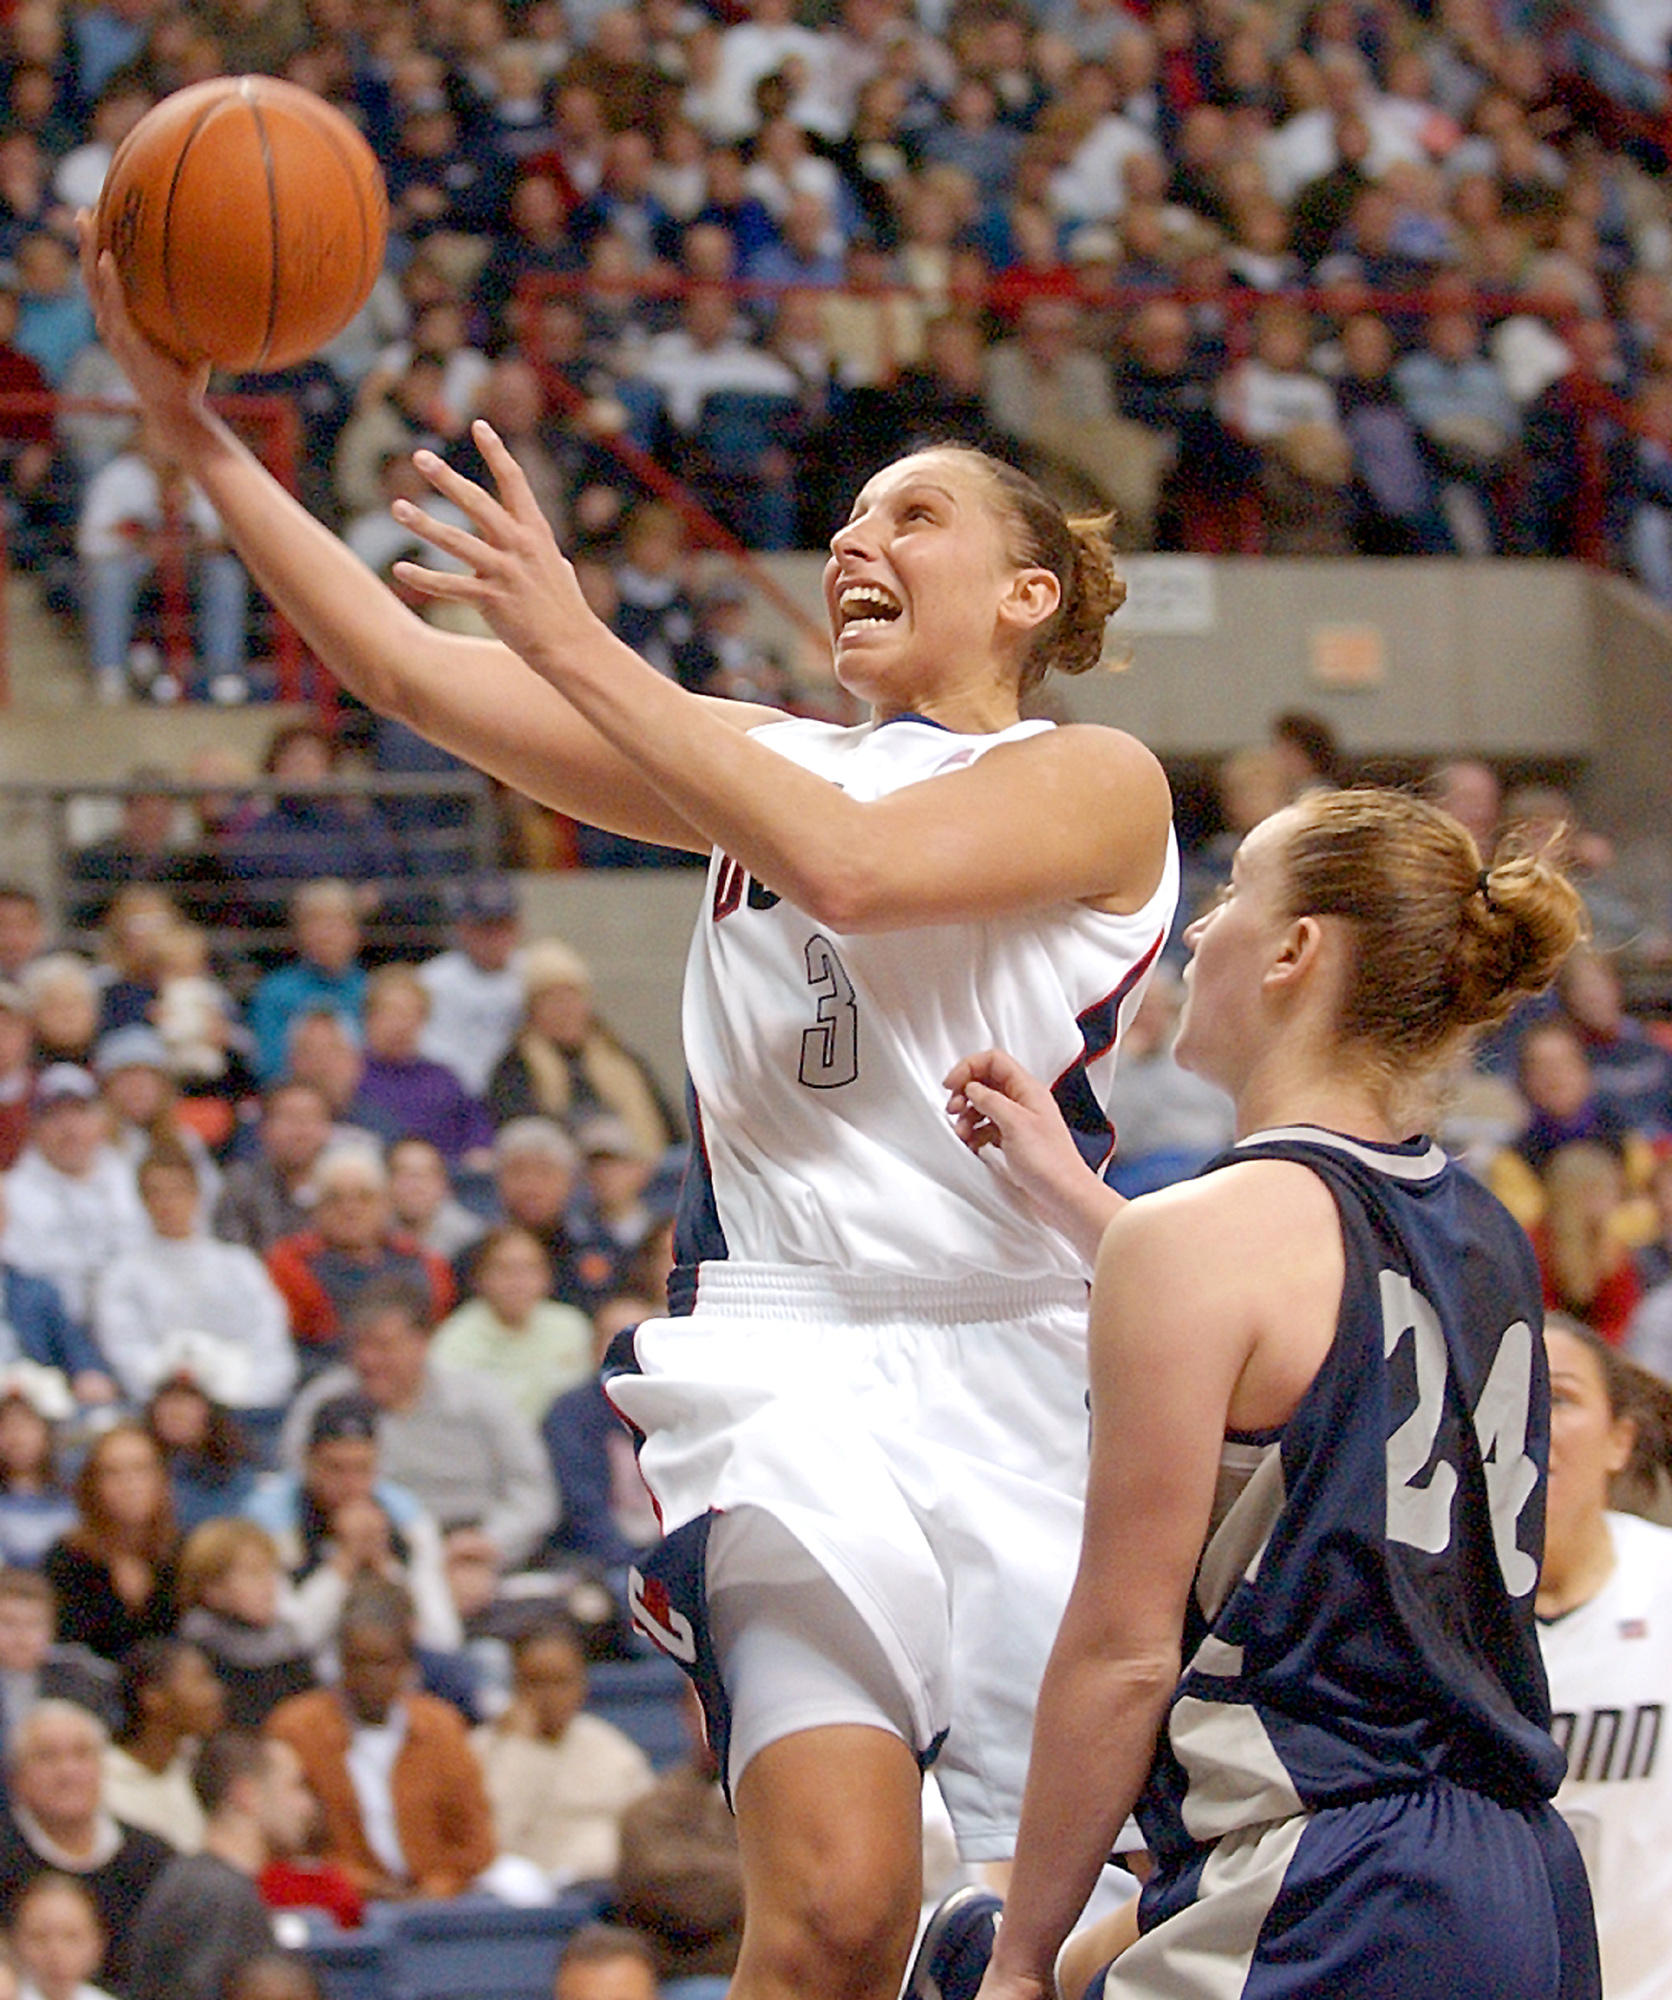 ** ADVANCE FOR WEEKEND EDITIONS, FEB. 19-20 -- FILE -- ** University of Connecticut's Diana Taurasi (3) goes to the basket against Georgetown's Bethany LeSueur in Storrs, Conn., in this 2004 phoito. With Taurasi gone, the Connecticut women's team has lost their stranglehold on the women's game. (AP Photo/Bob Child/files)